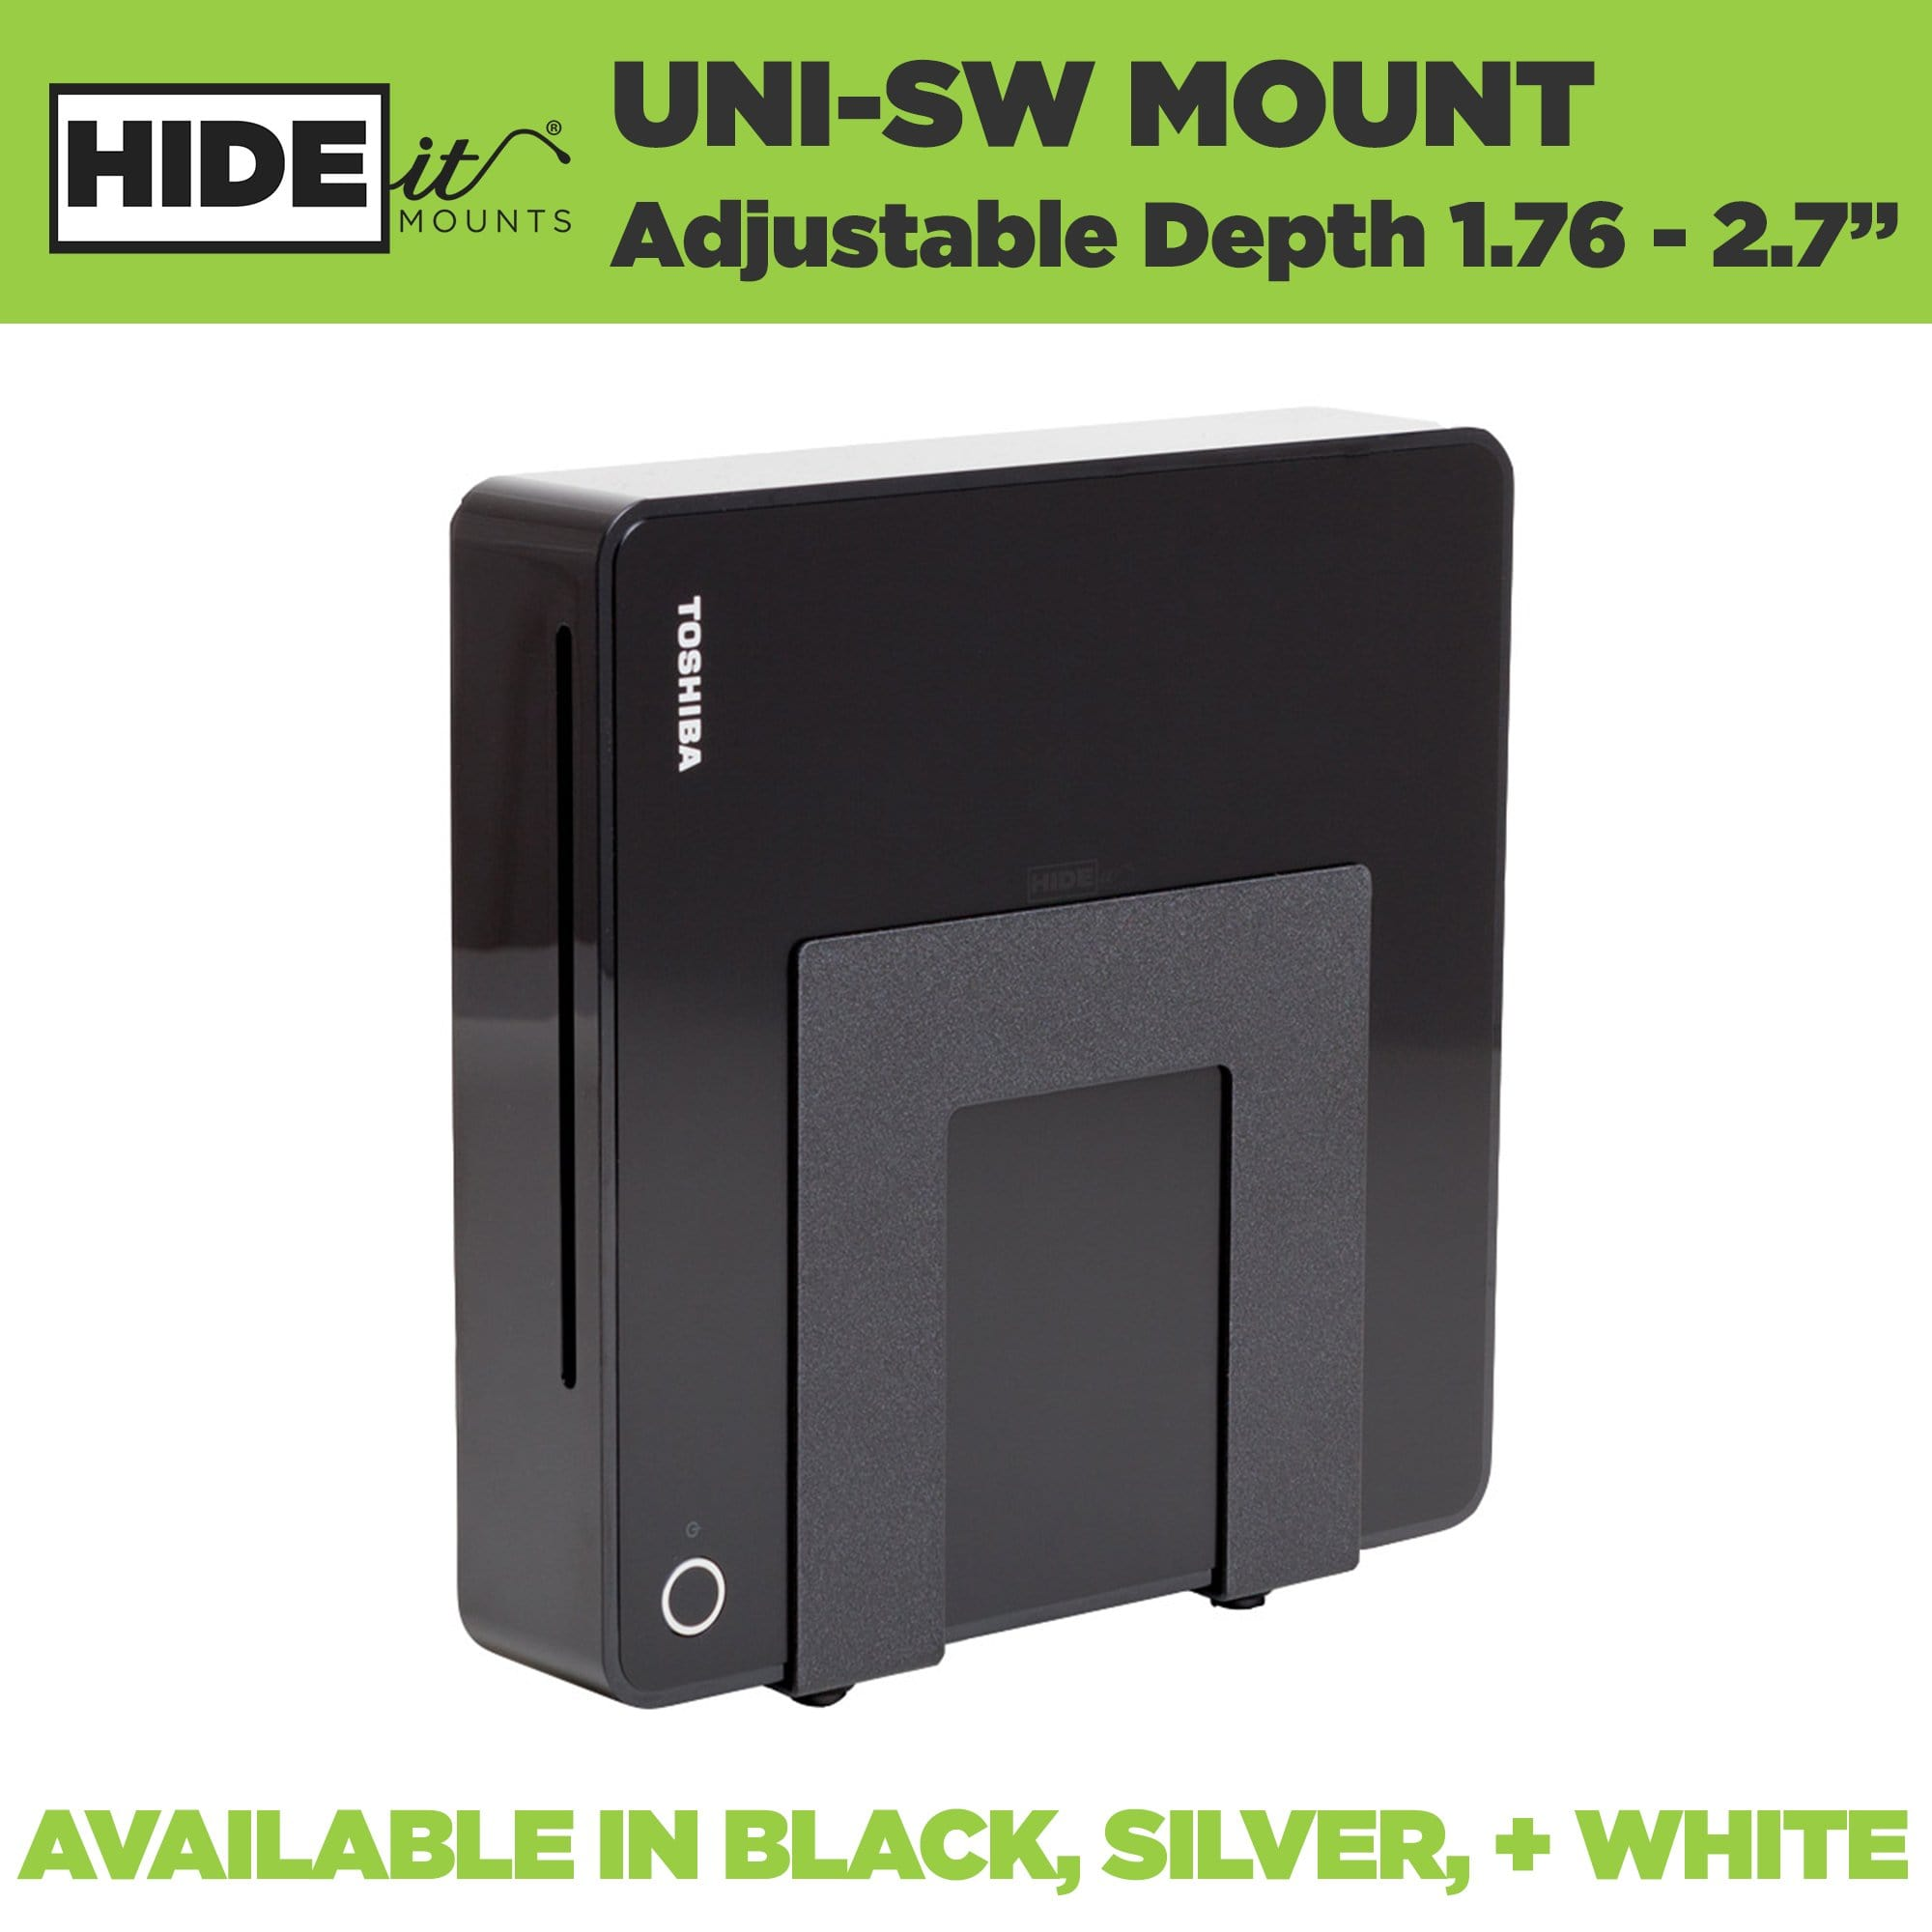 Small Cable Box Adjustable Mini Computer Wall Mount Black HIDEit Uni-SW